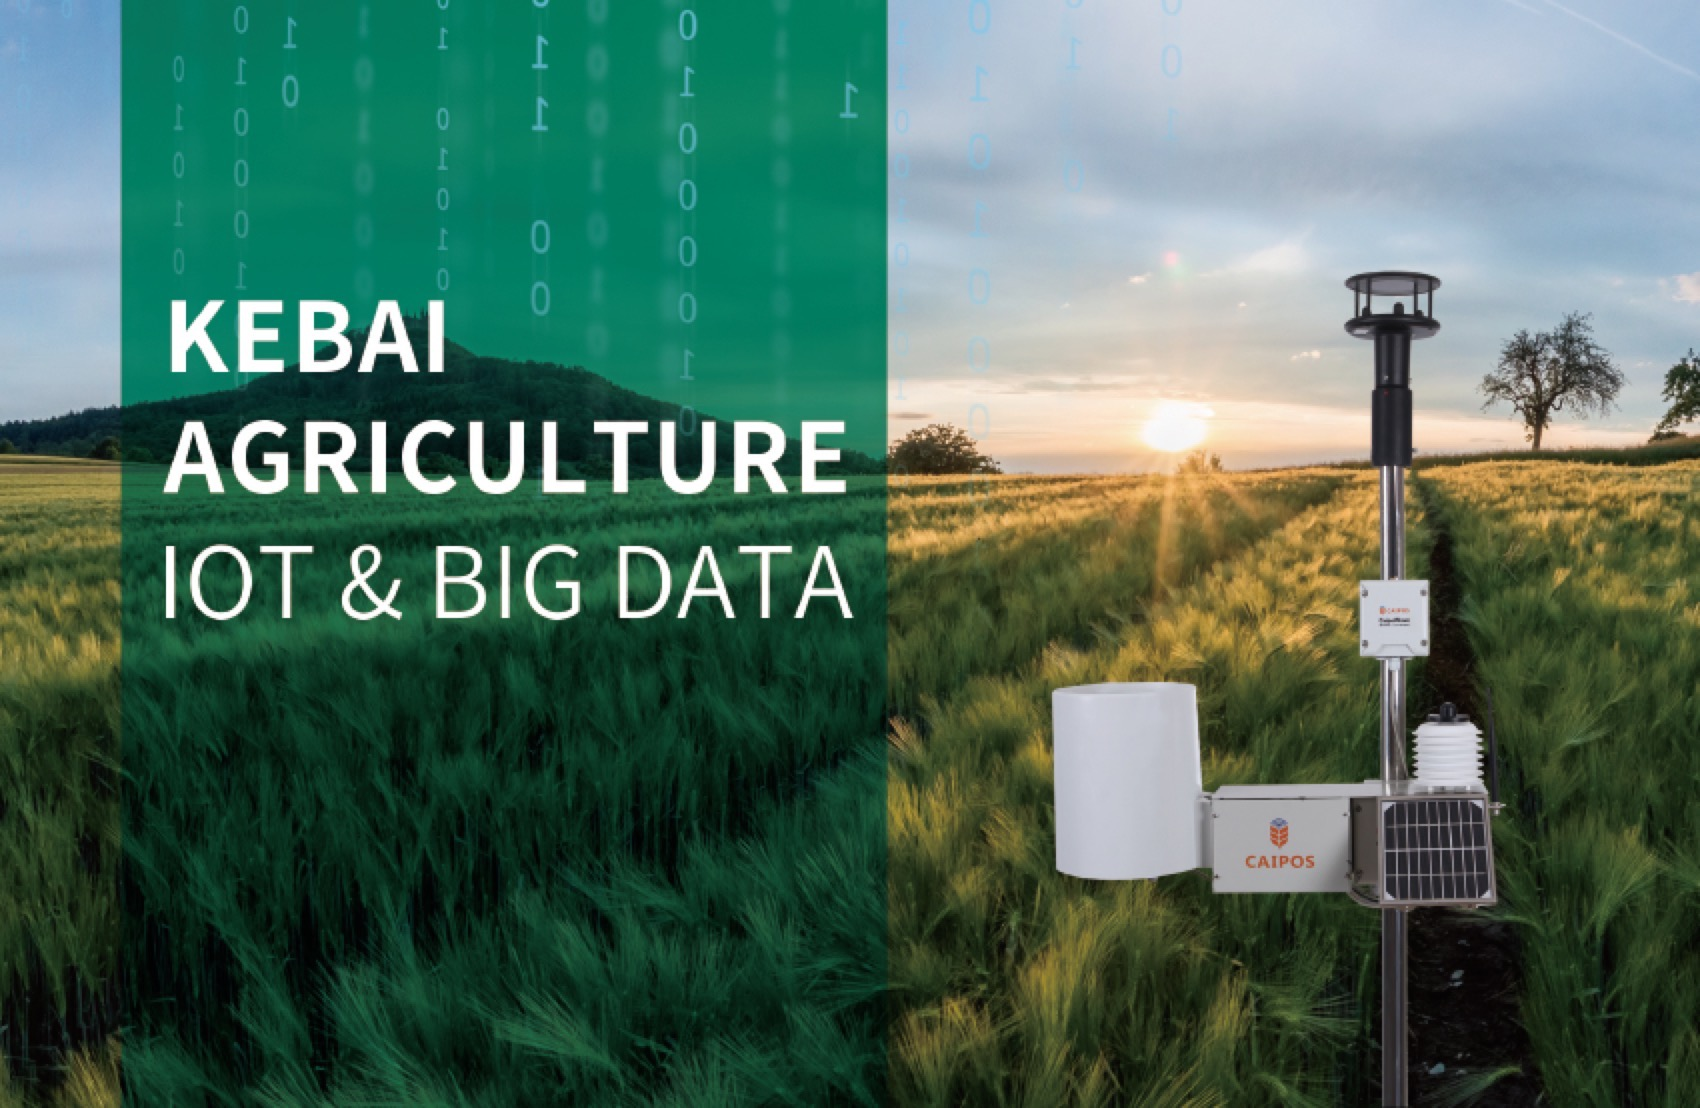 Kebai: Agriculture IoT and Big Data